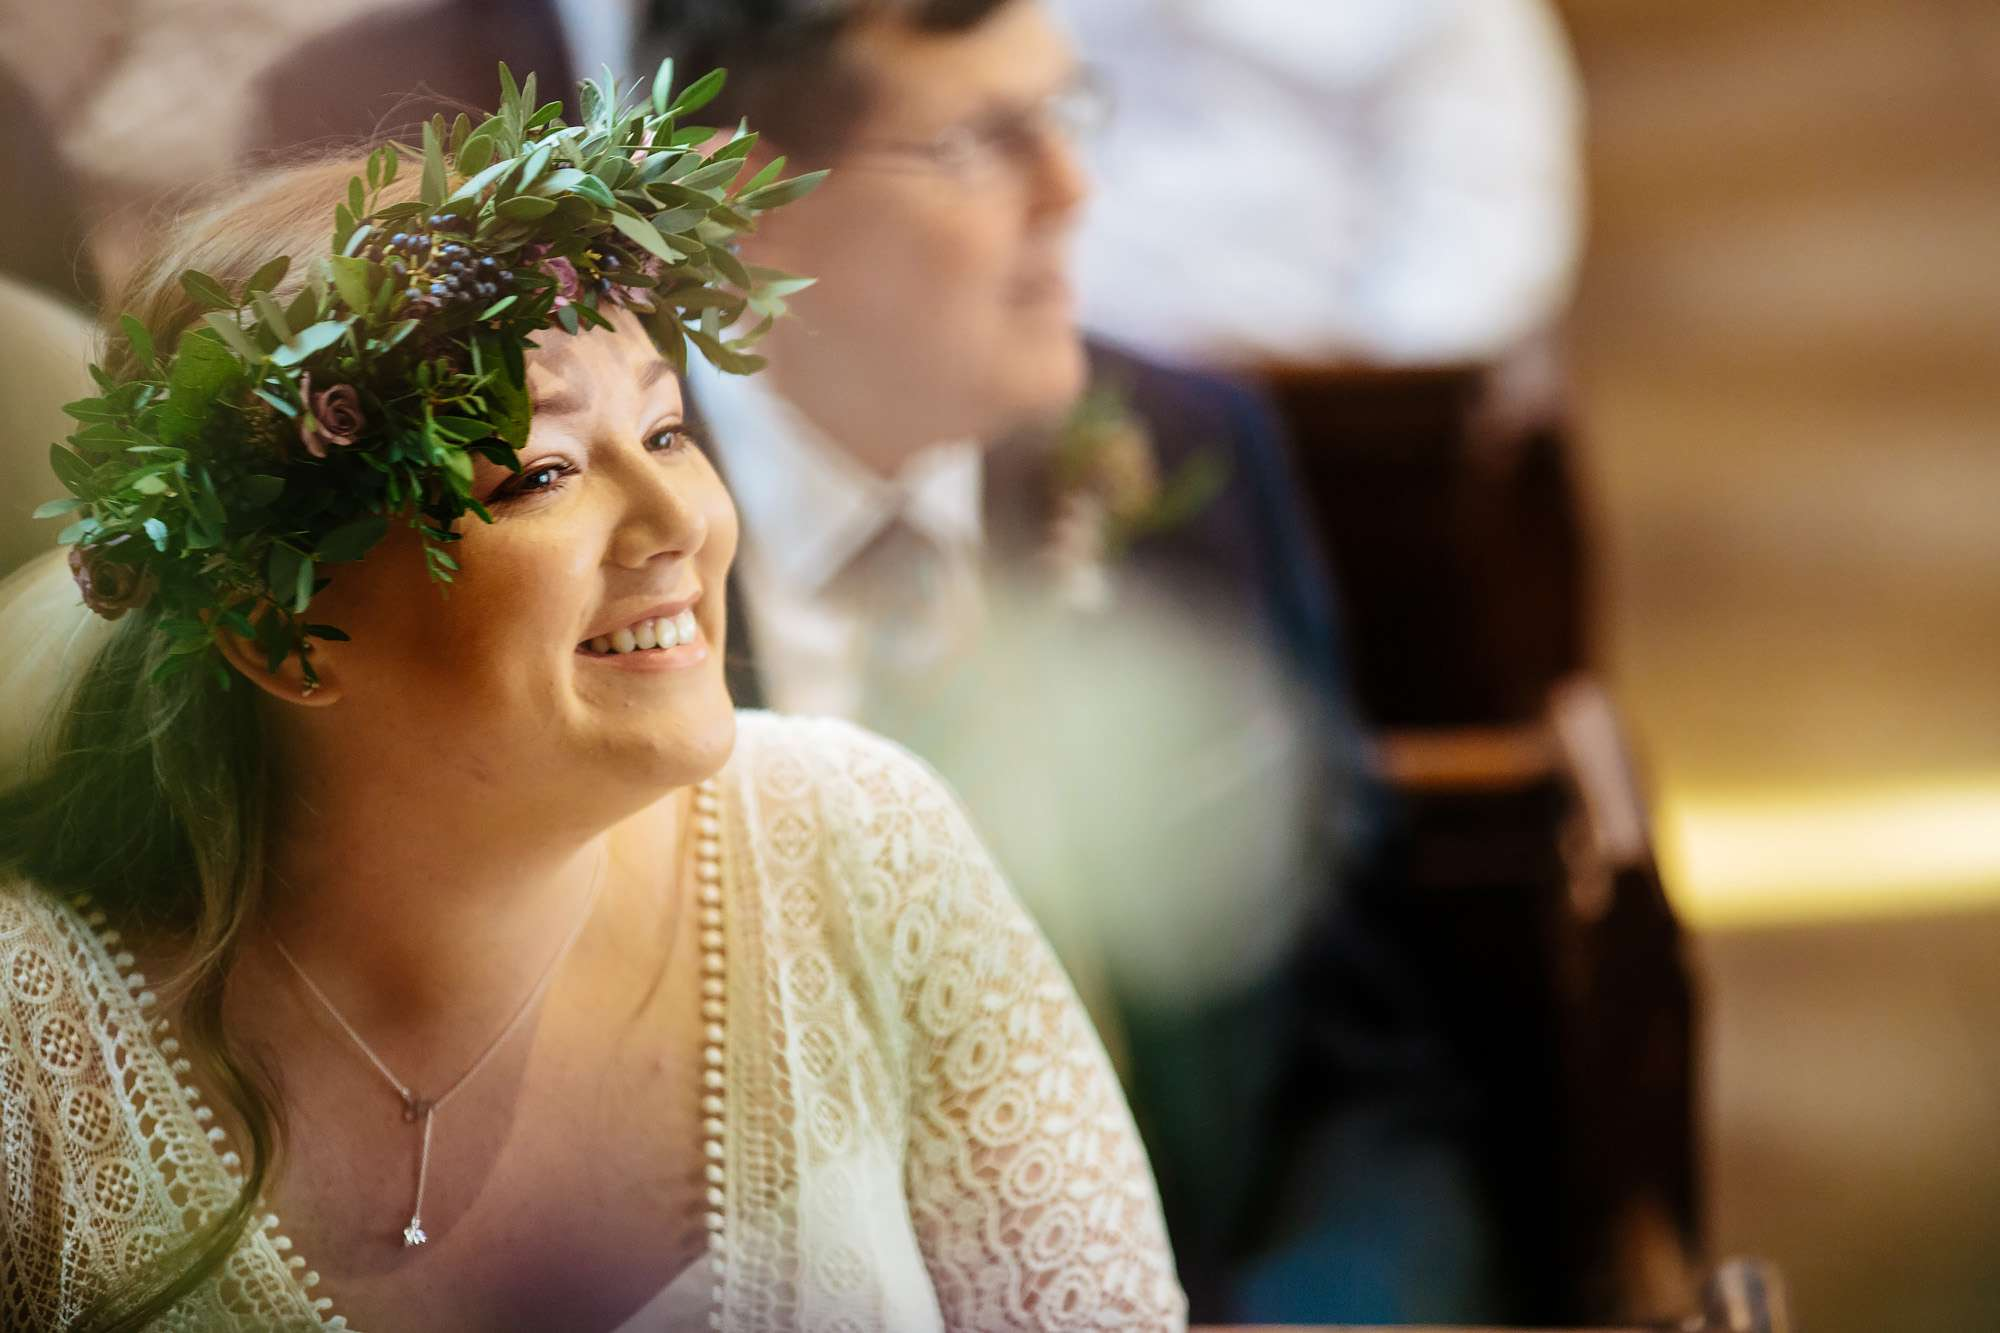 Bride smiles during her church wedding ceremony